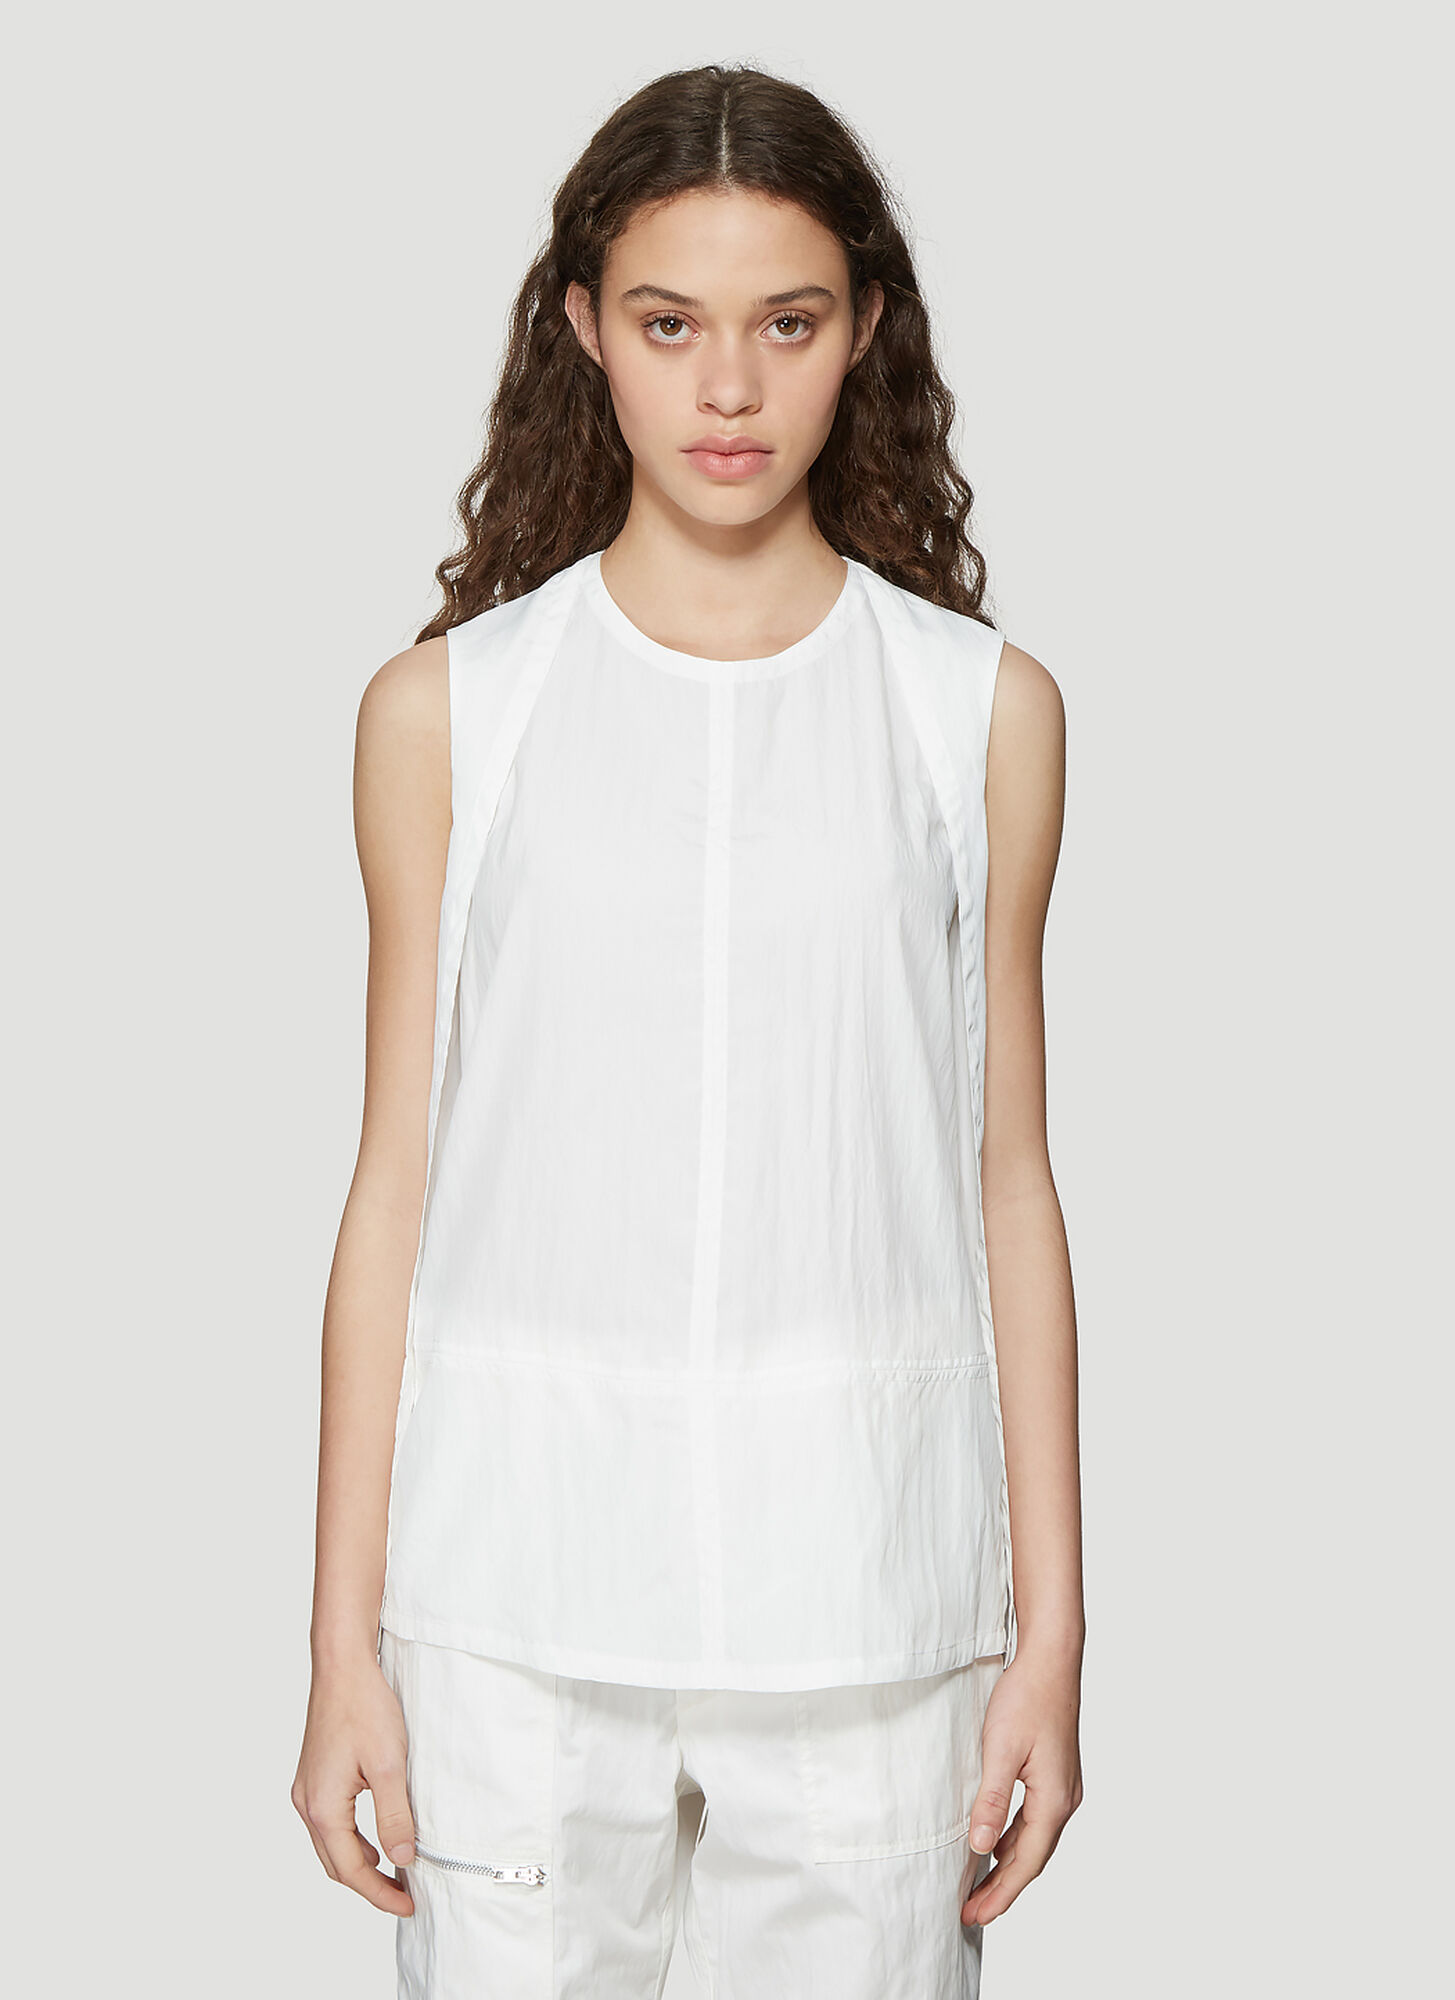 Helmut Lang Sheer Parachute Top in White